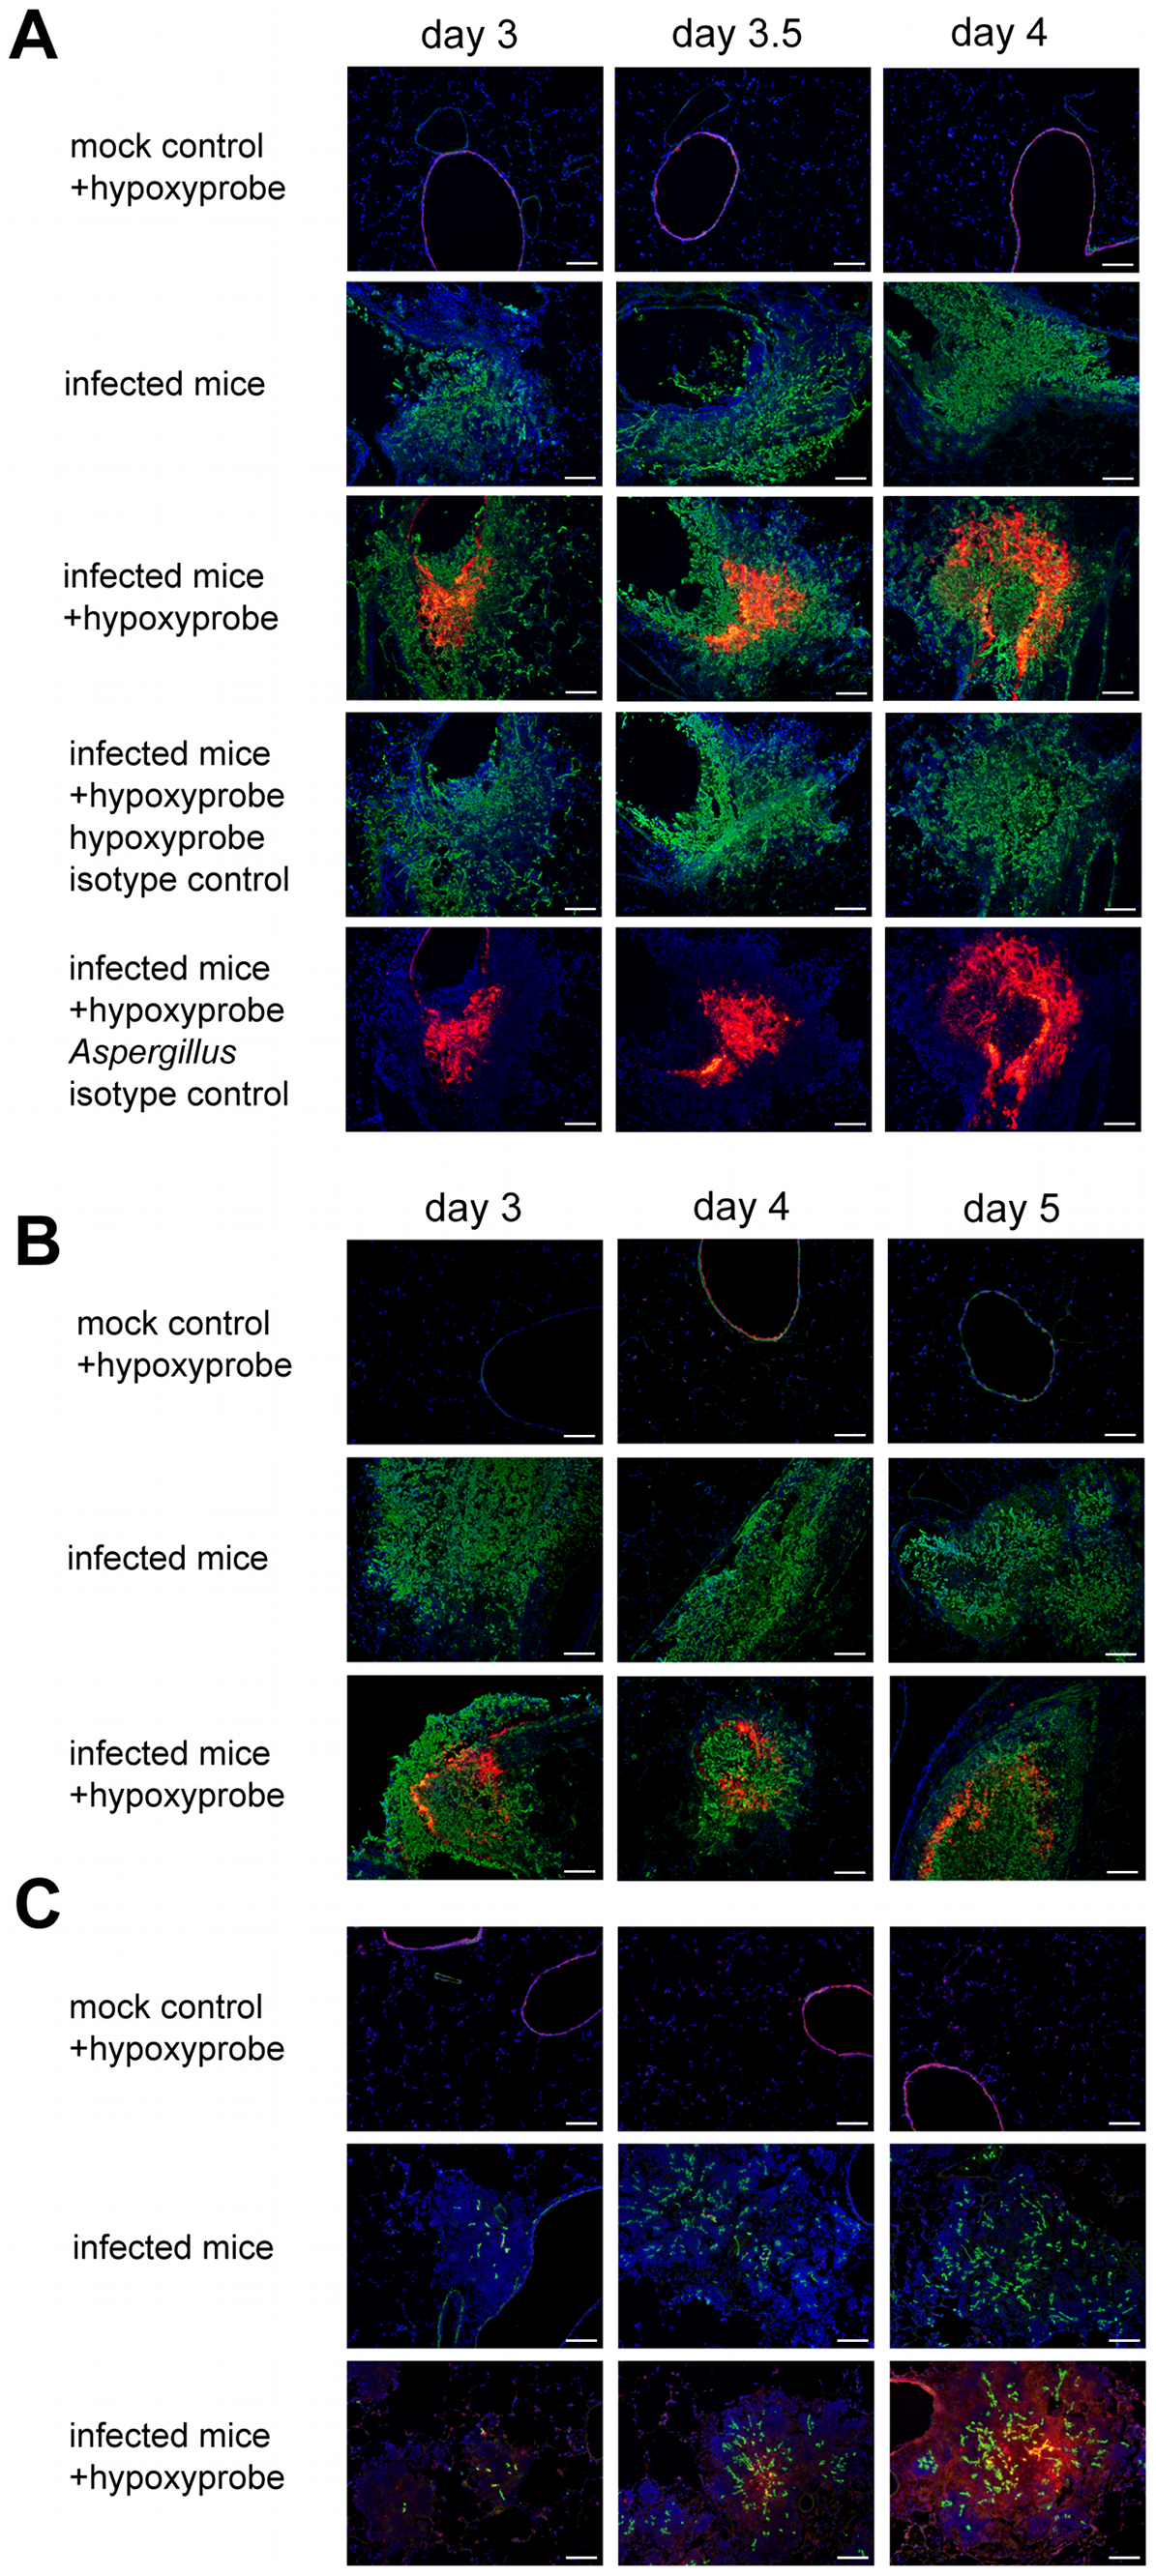 Identification of hypoxic microenvironments at the site of <i>A. fumigatus</i> infections in murine lungs.